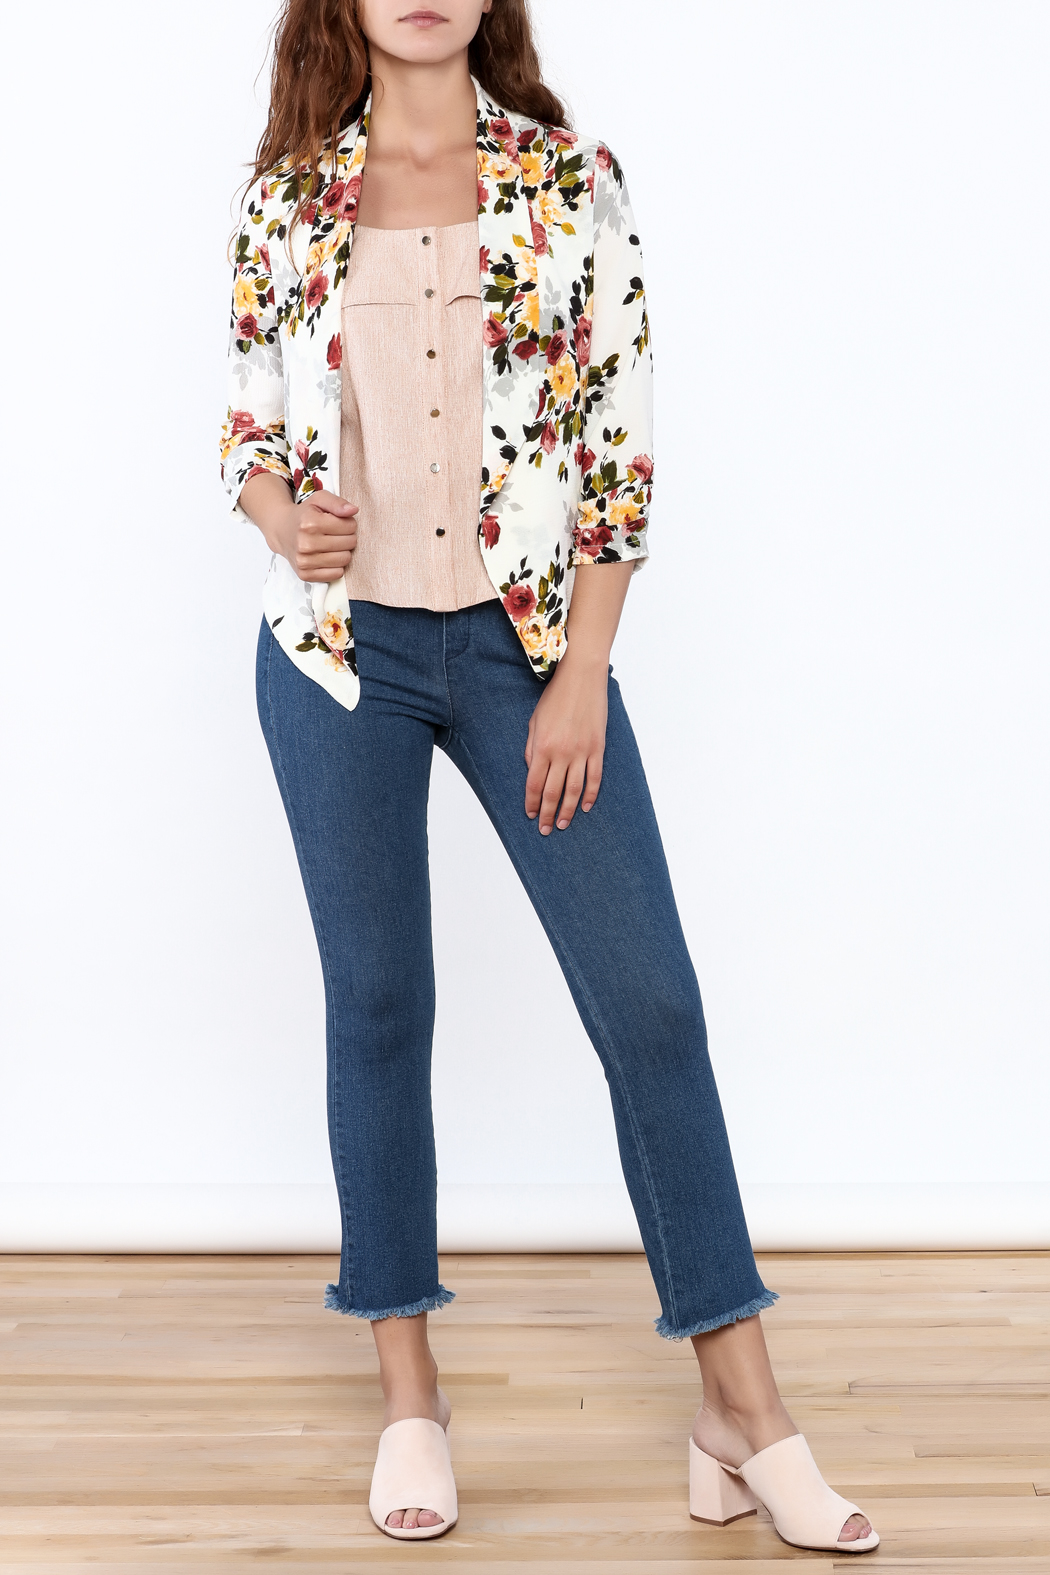 MICHEL Floral Blazer - Side Cropped Image